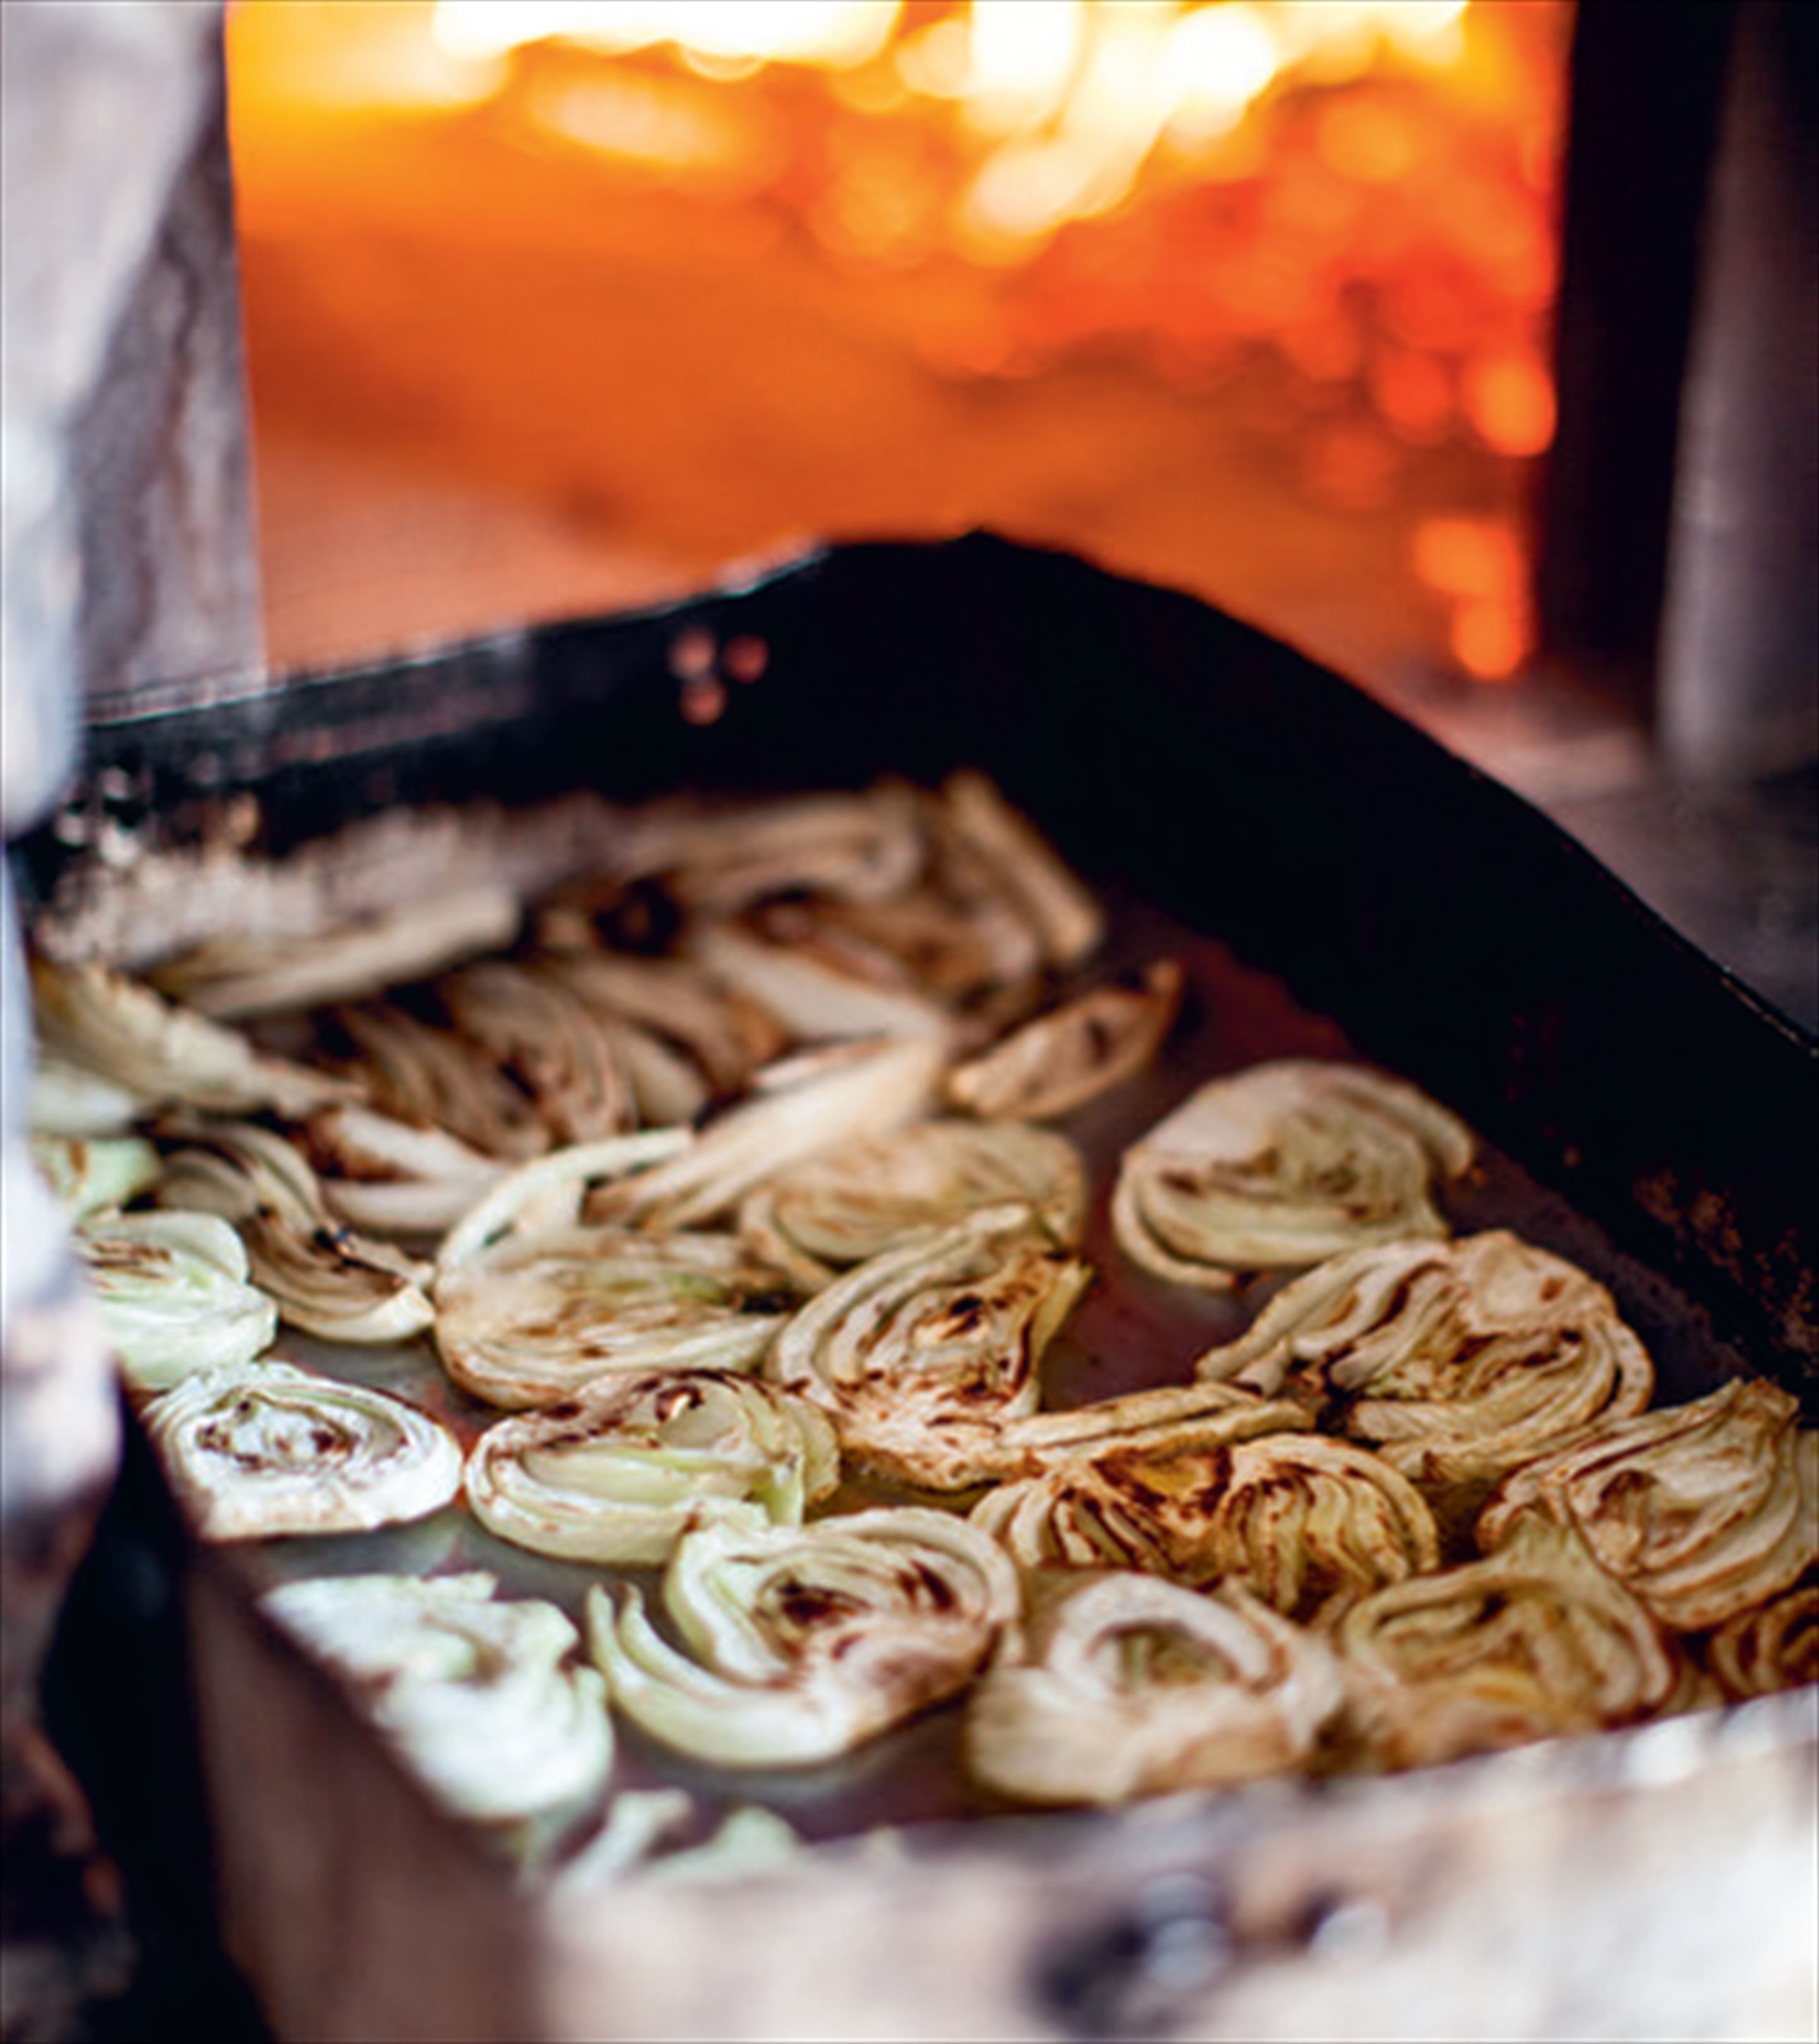 Slow-roasted Florence fennel with thyme